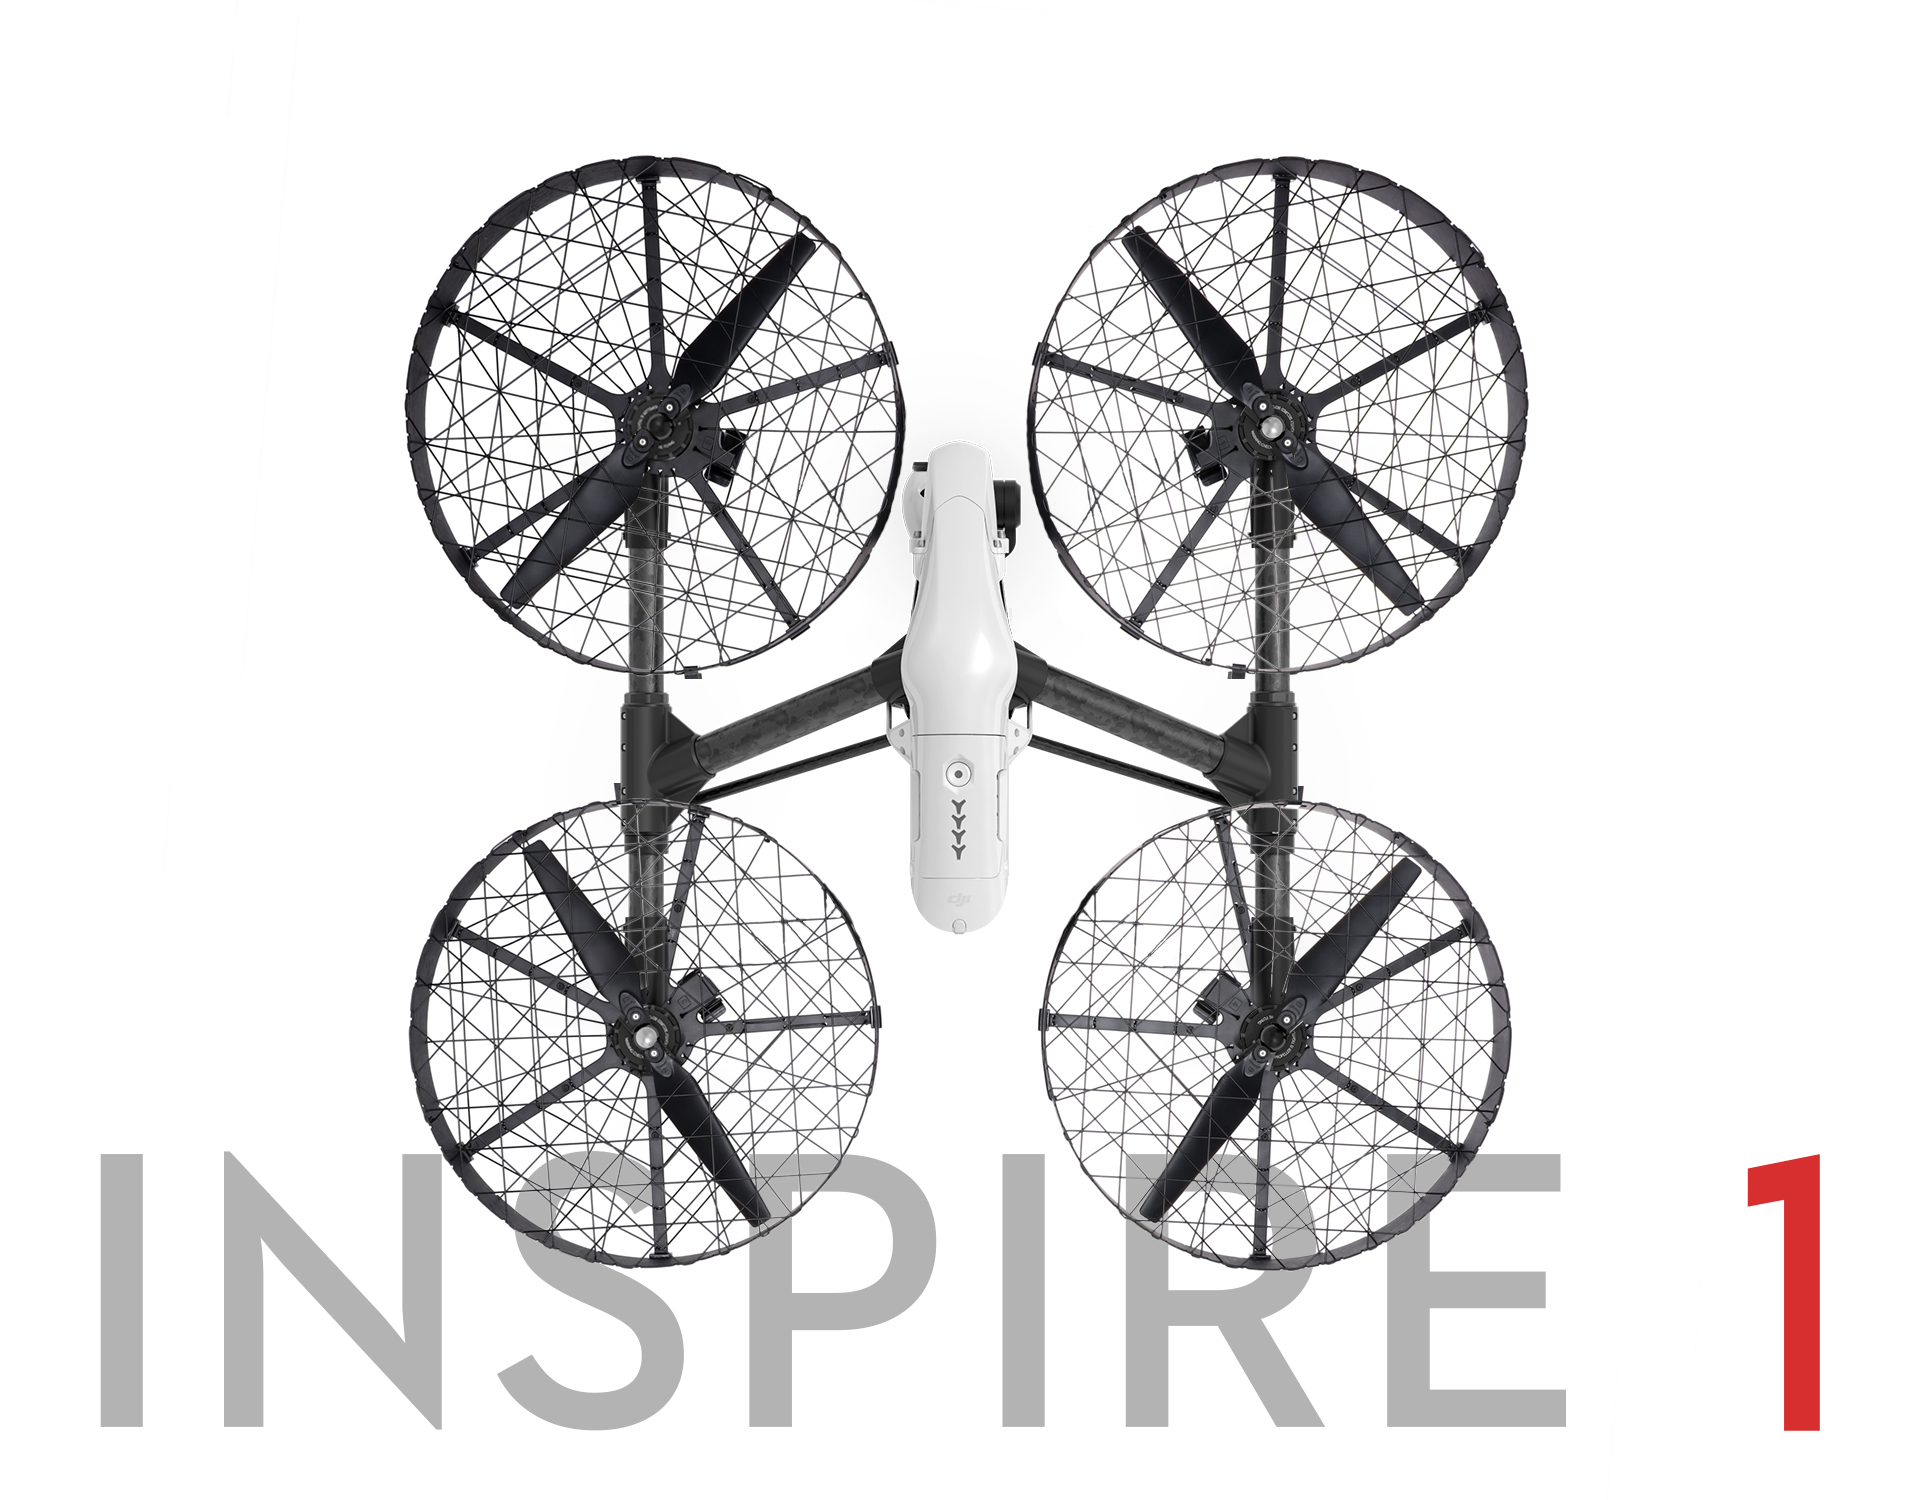 Propeller Cage for Inspire 1